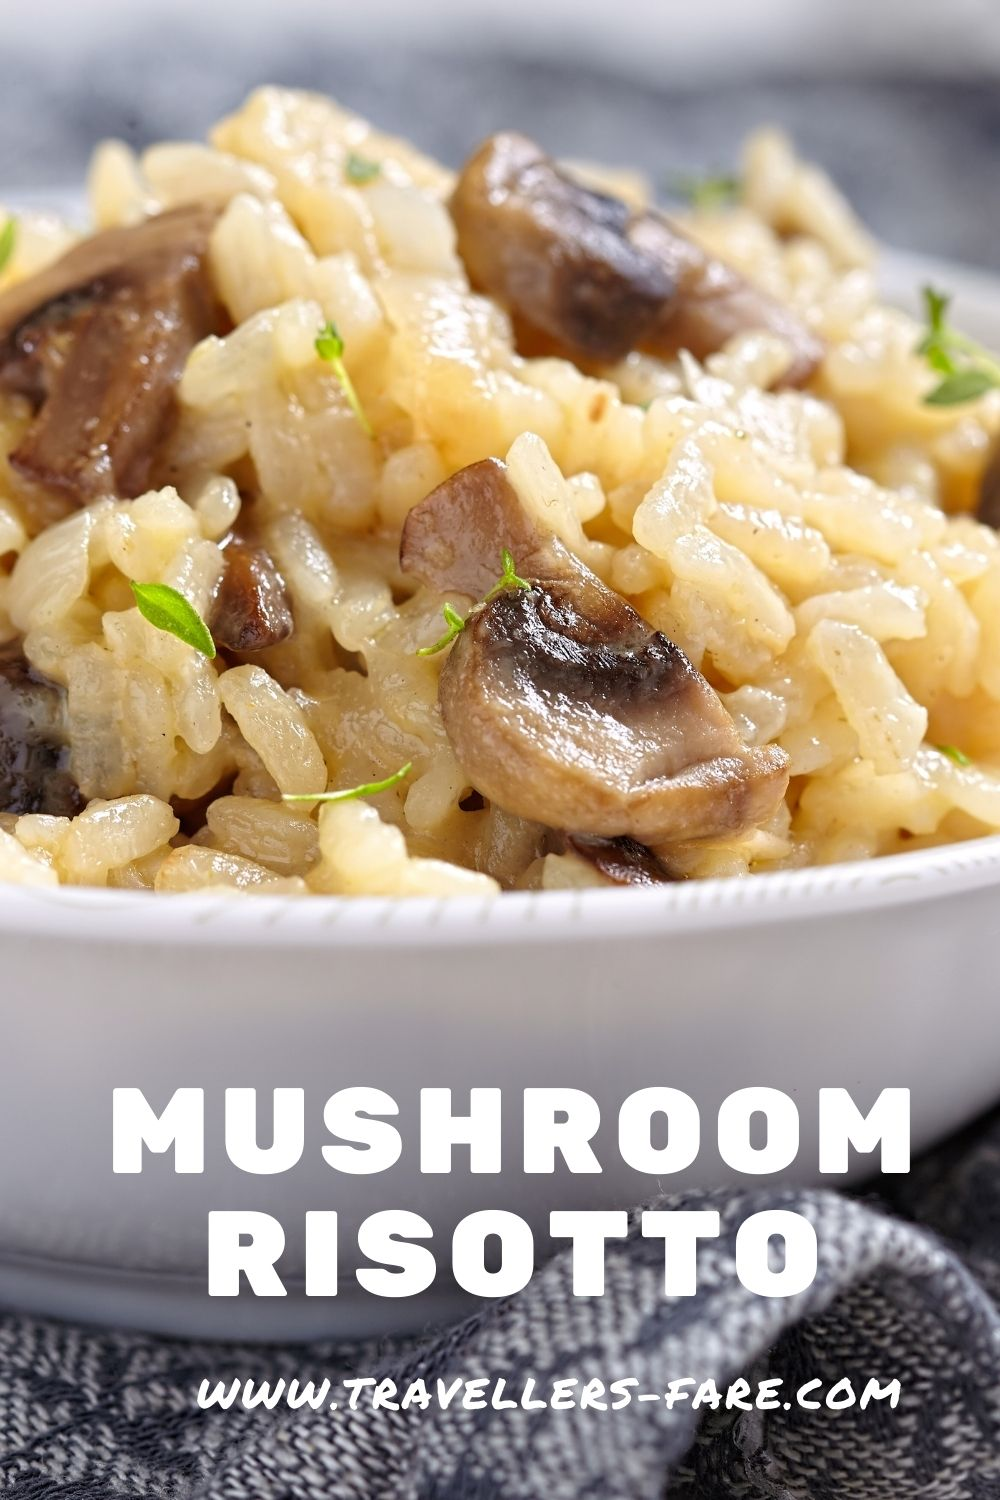 Mushroom Risotto Is Made From Arborio Rice, Mushrooms And Vegetable Stock. An Easy Risotto.